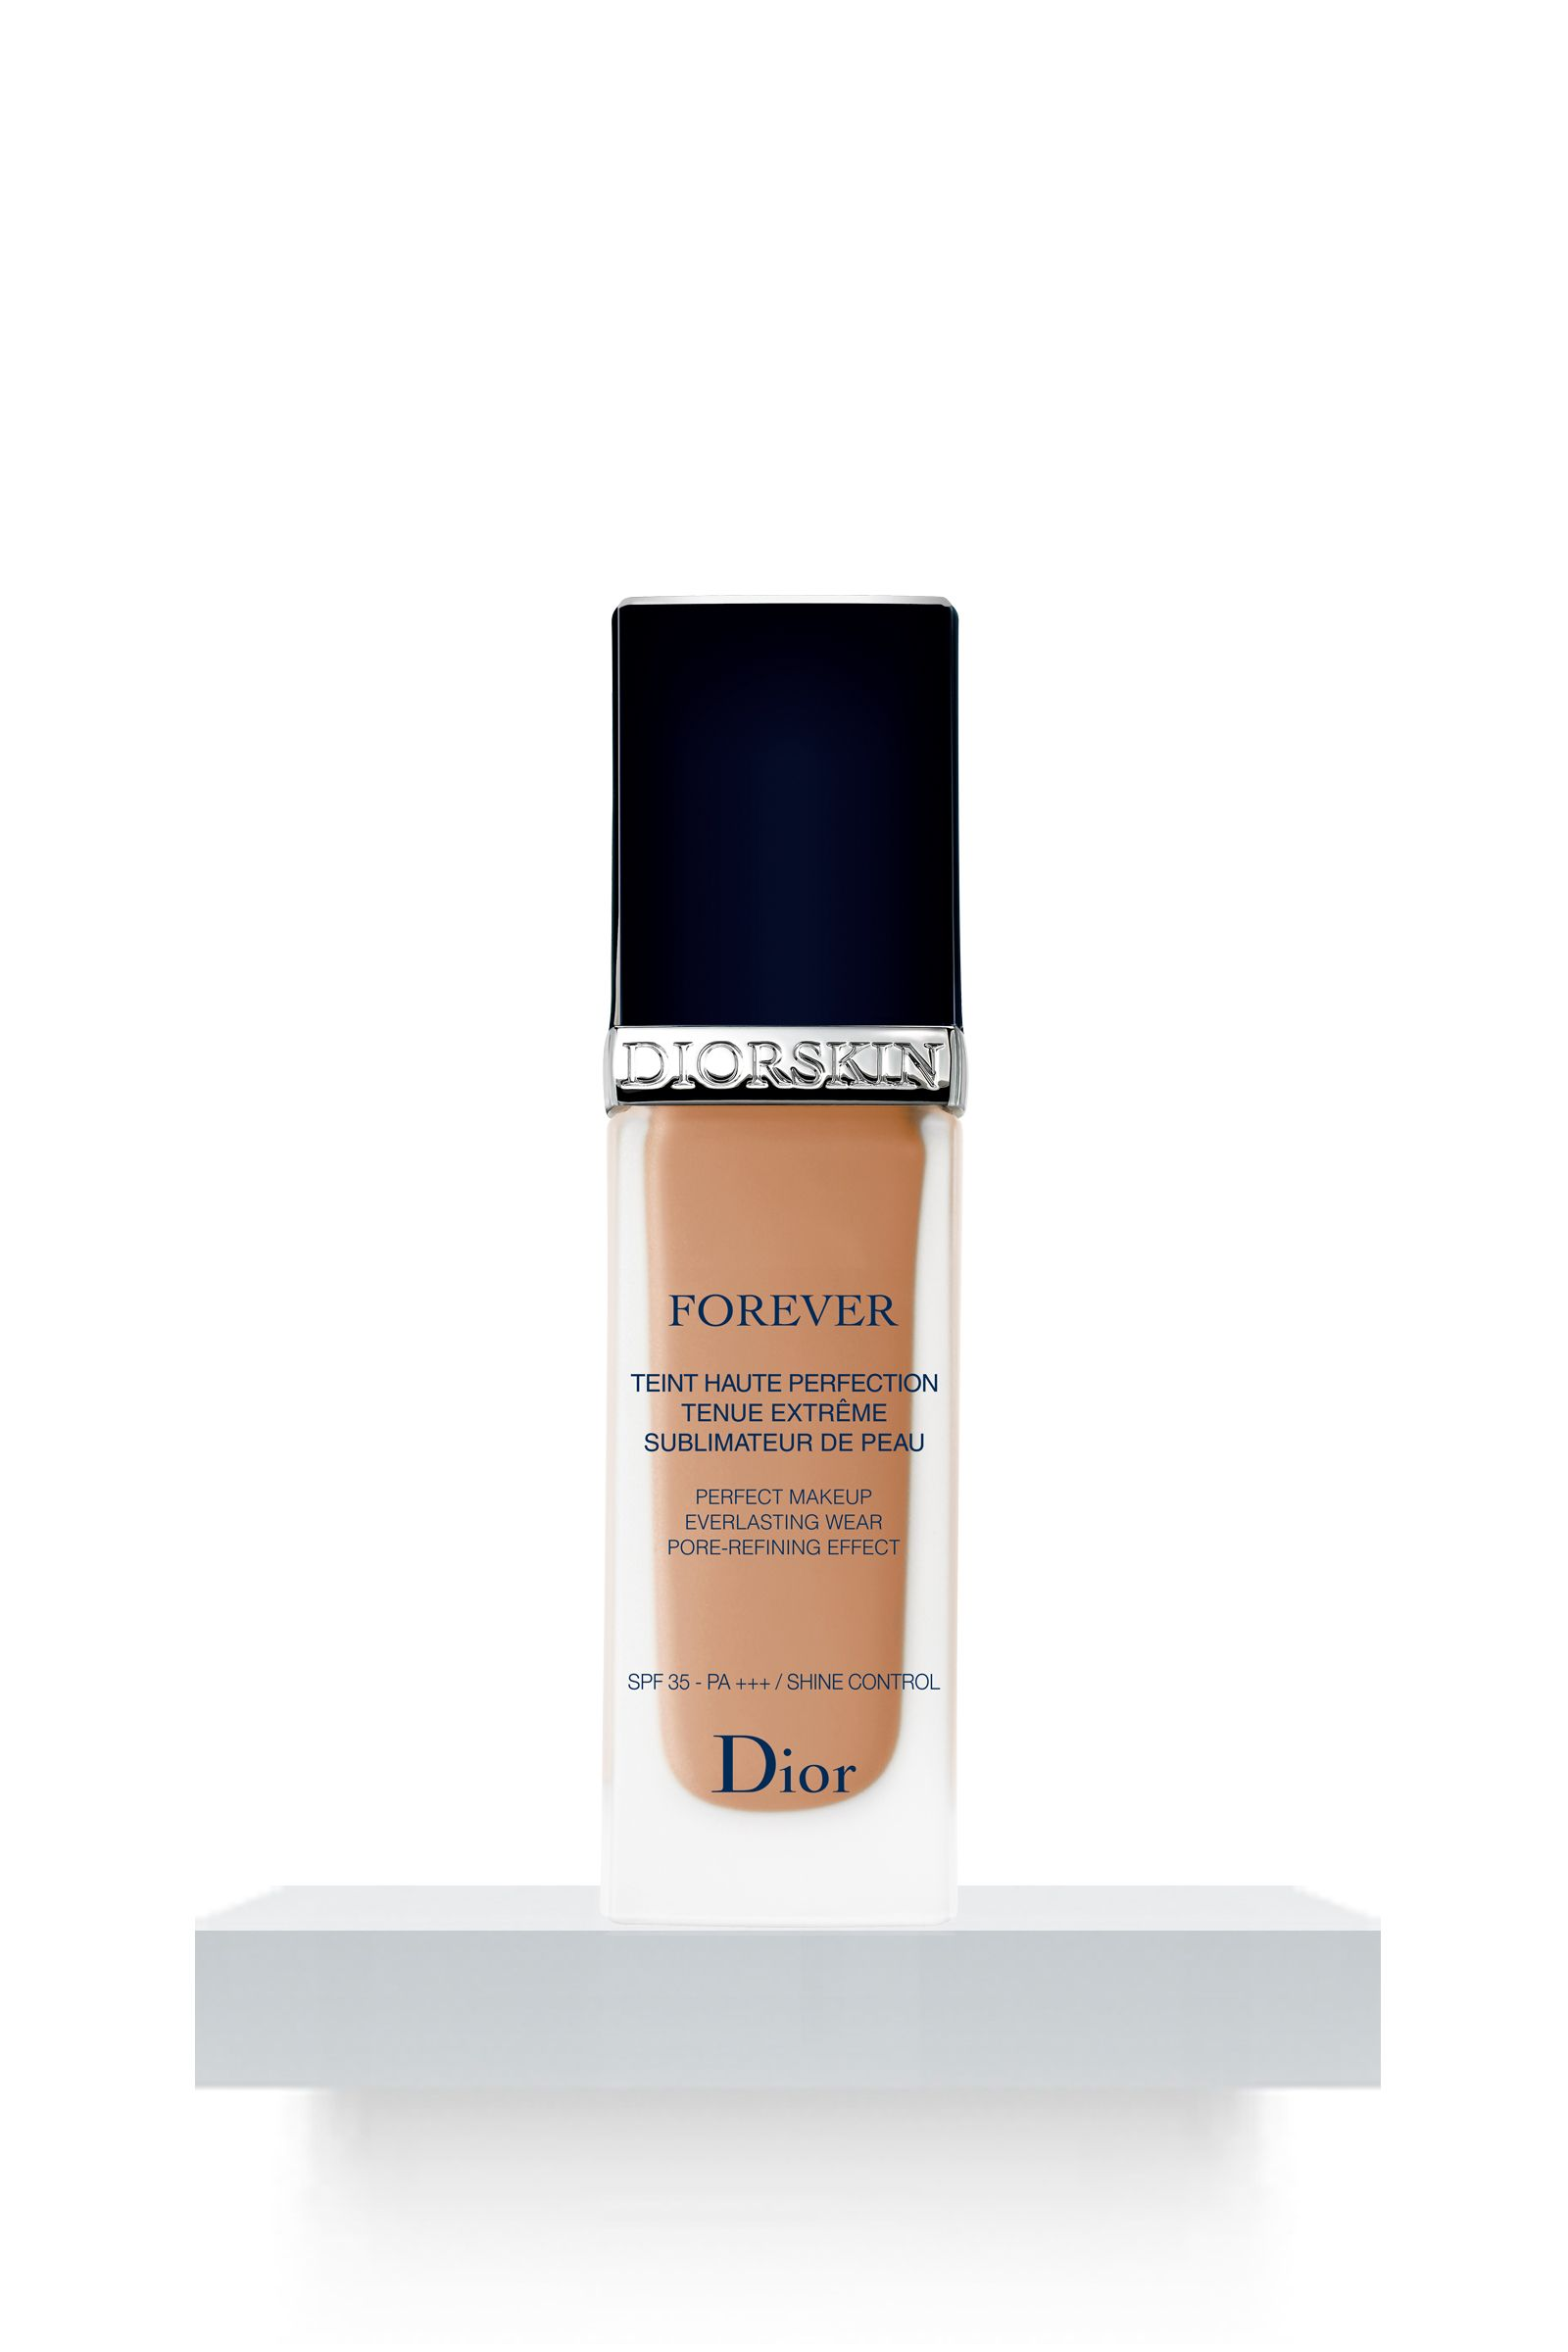 Dior Diorskin Forever Foundation 30ml Honey Beige 040